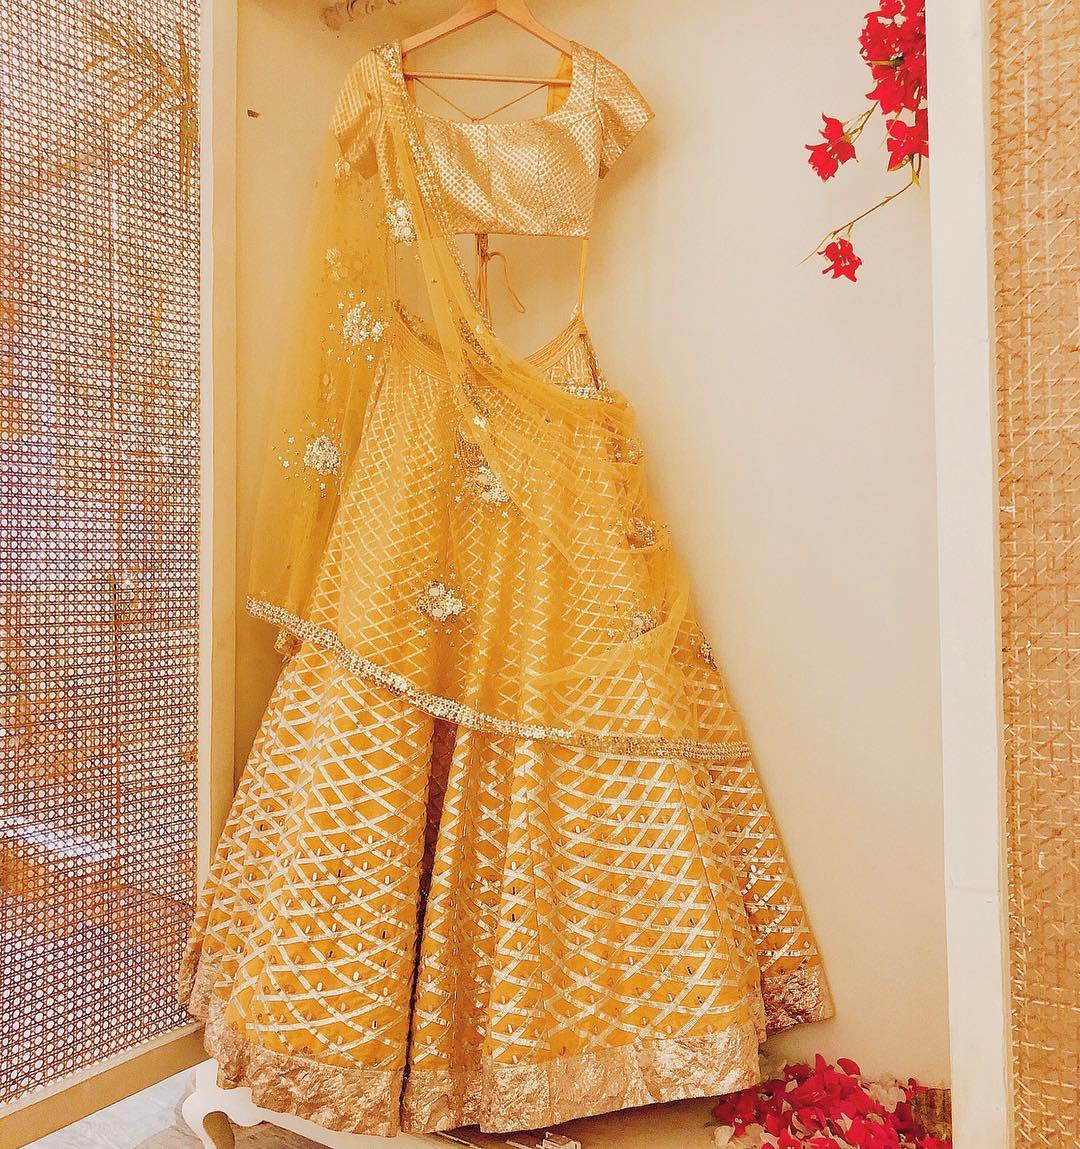 10 Pretty Yellow Lehengas For Your Haldi Outfit Inspiration [2019]